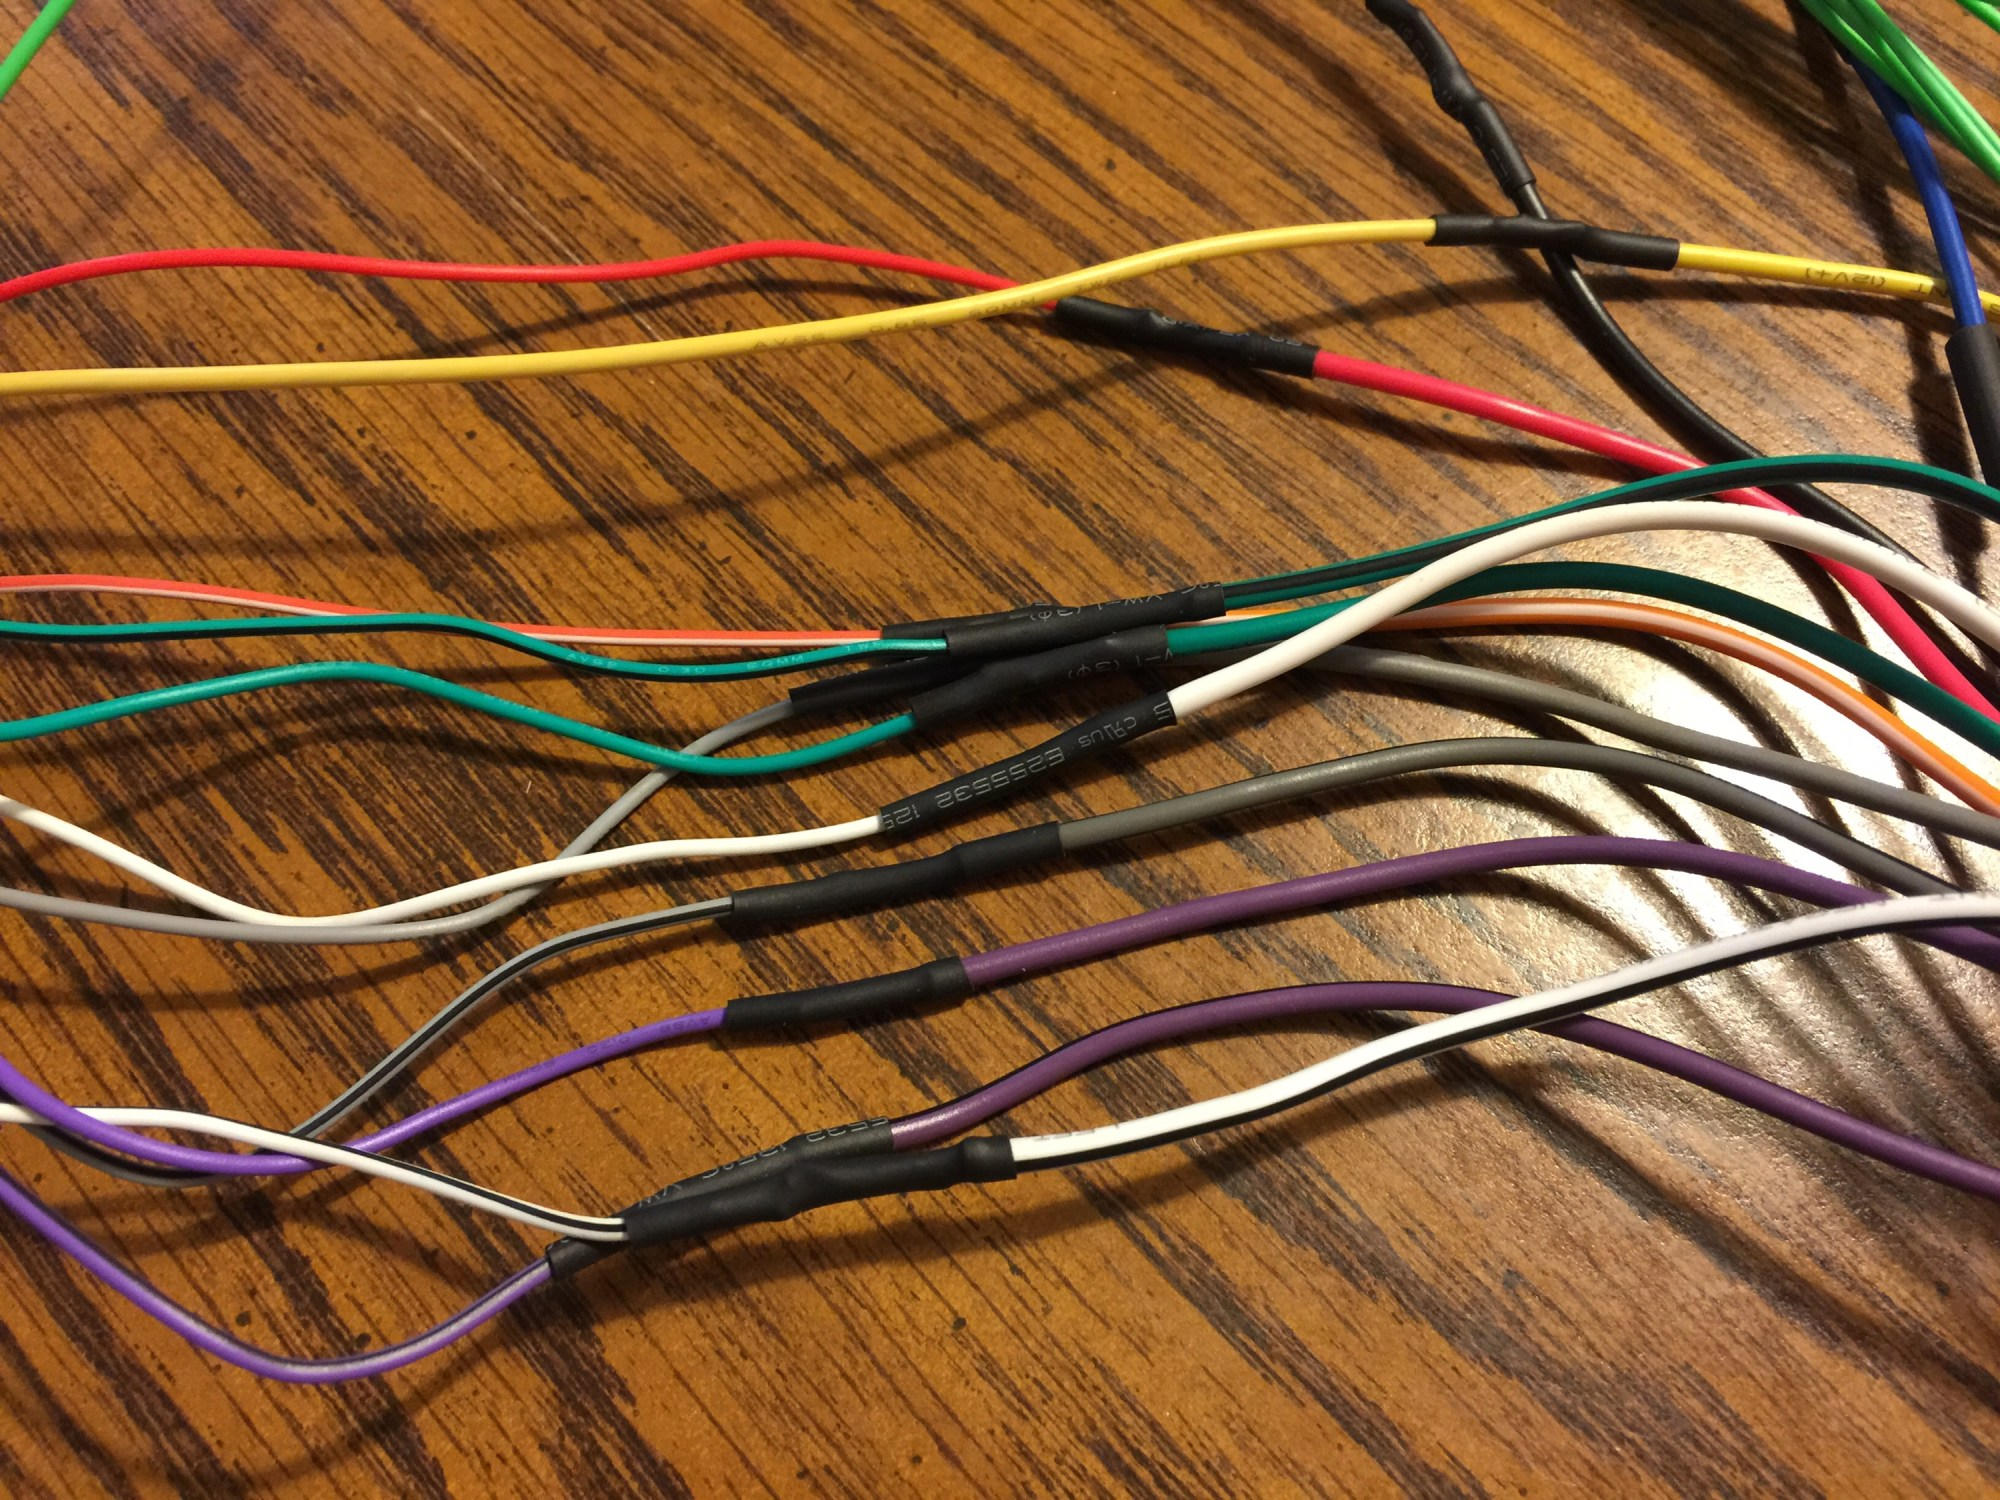 hight resolution of pioneer avh x2700bs wiring color diagram wiring librarypioneer avh x2700bs wiring color diagram 3